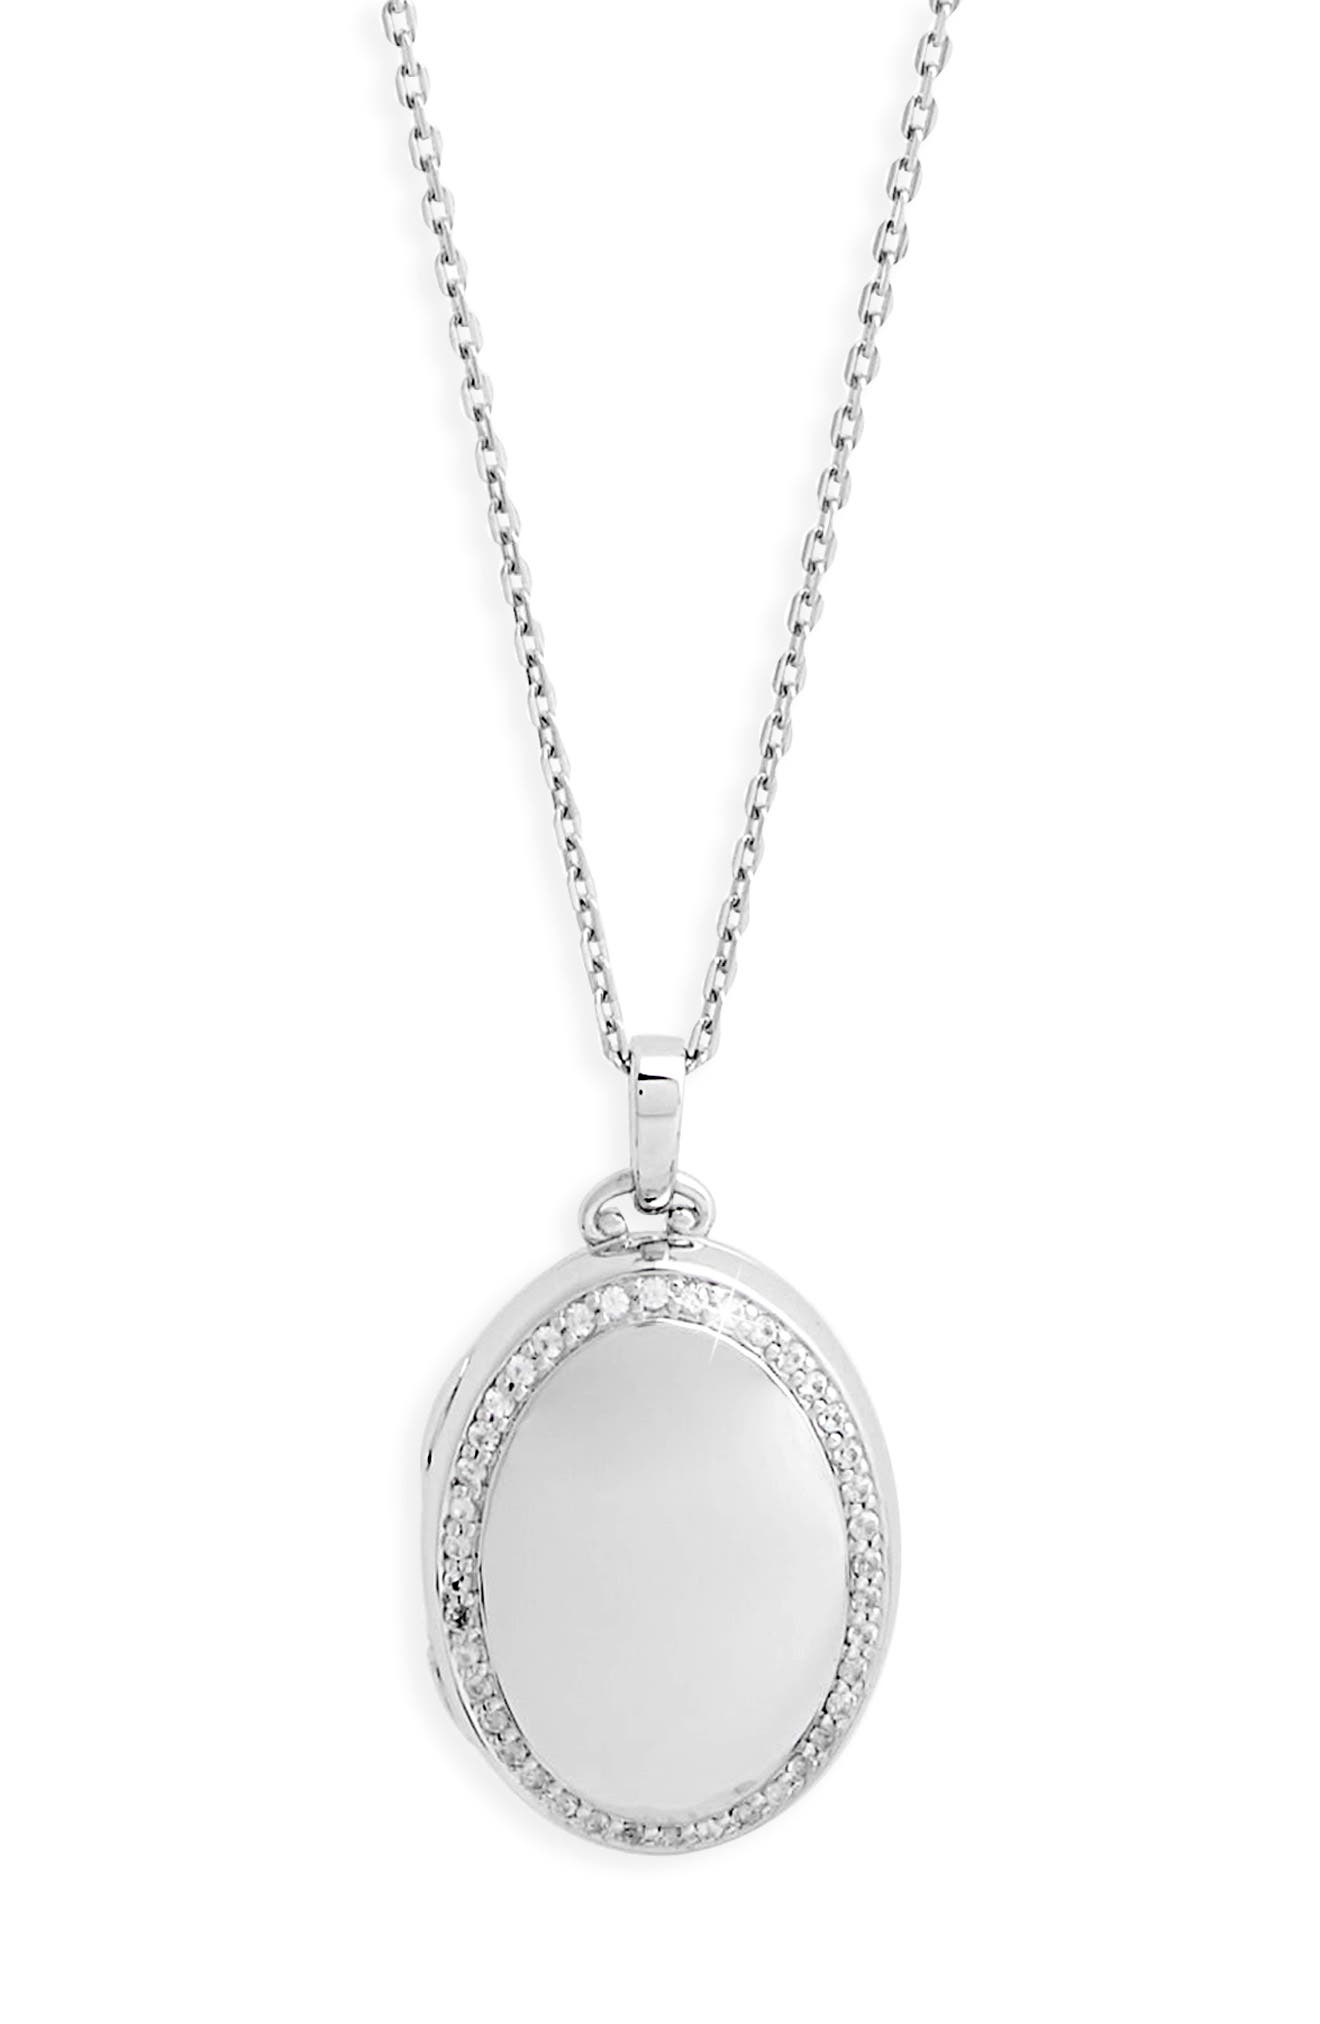 Four Image White Sapphire Locket Necklace,                             Alternate thumbnail 2, color,                             Sterling Silver